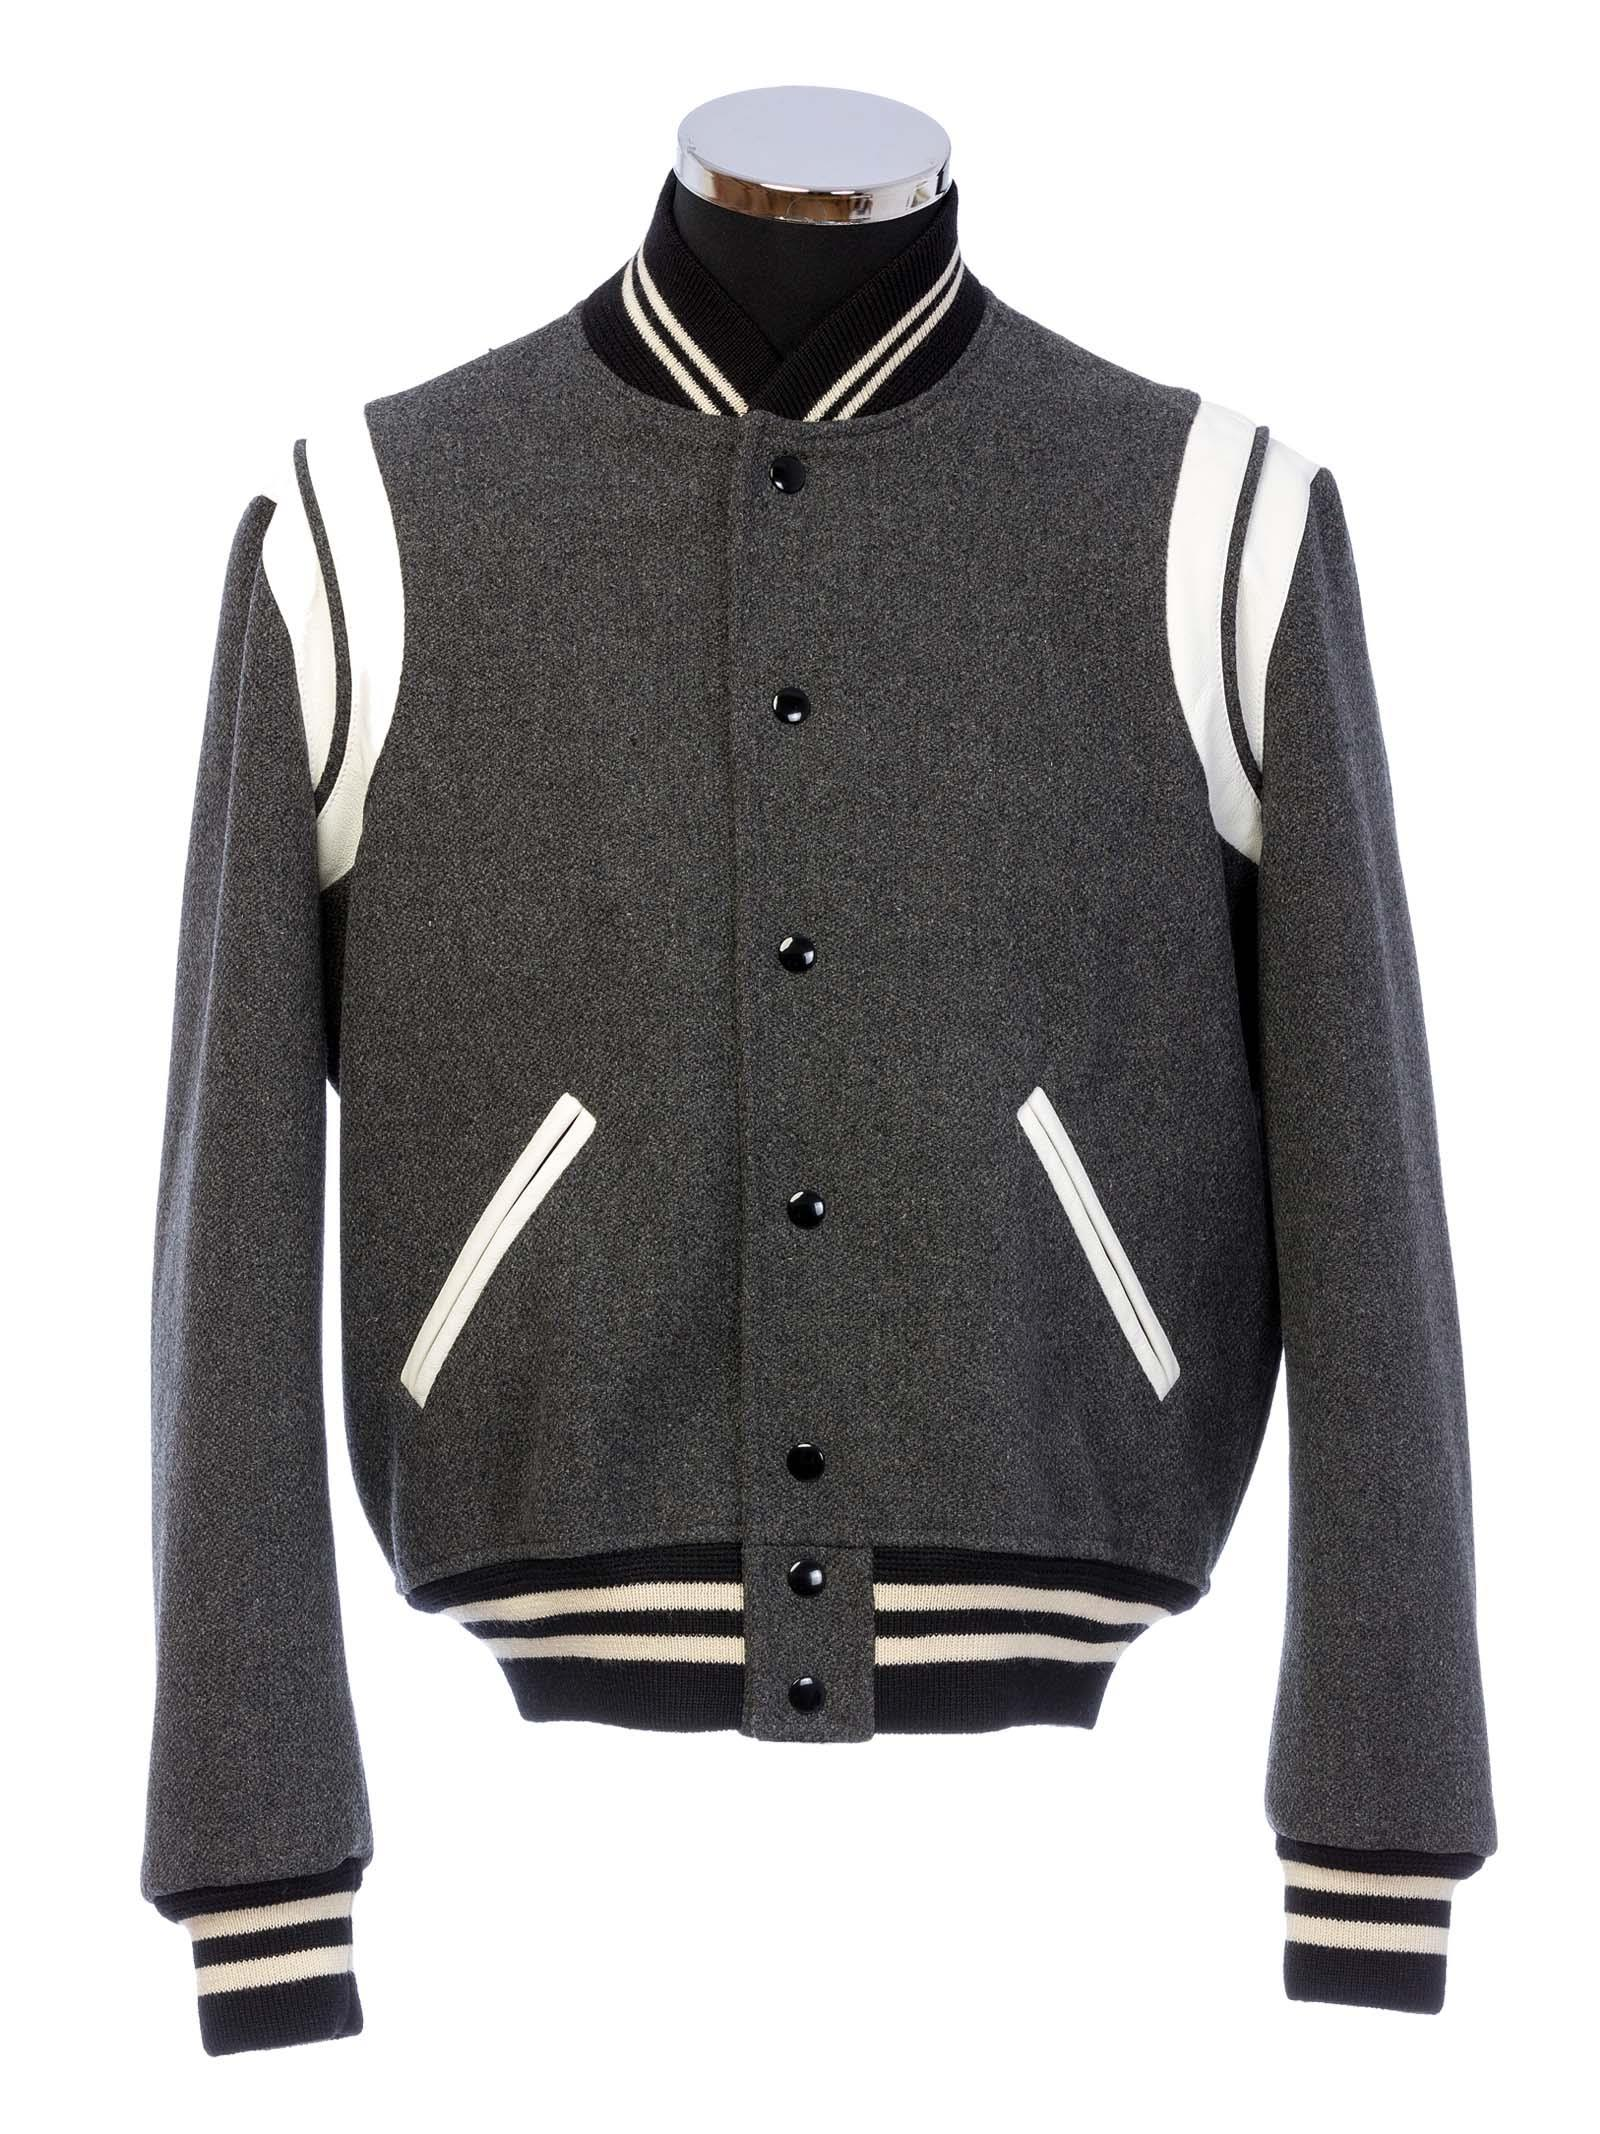 Saint Laurent Classic Teddy Jacket In Grey Wool